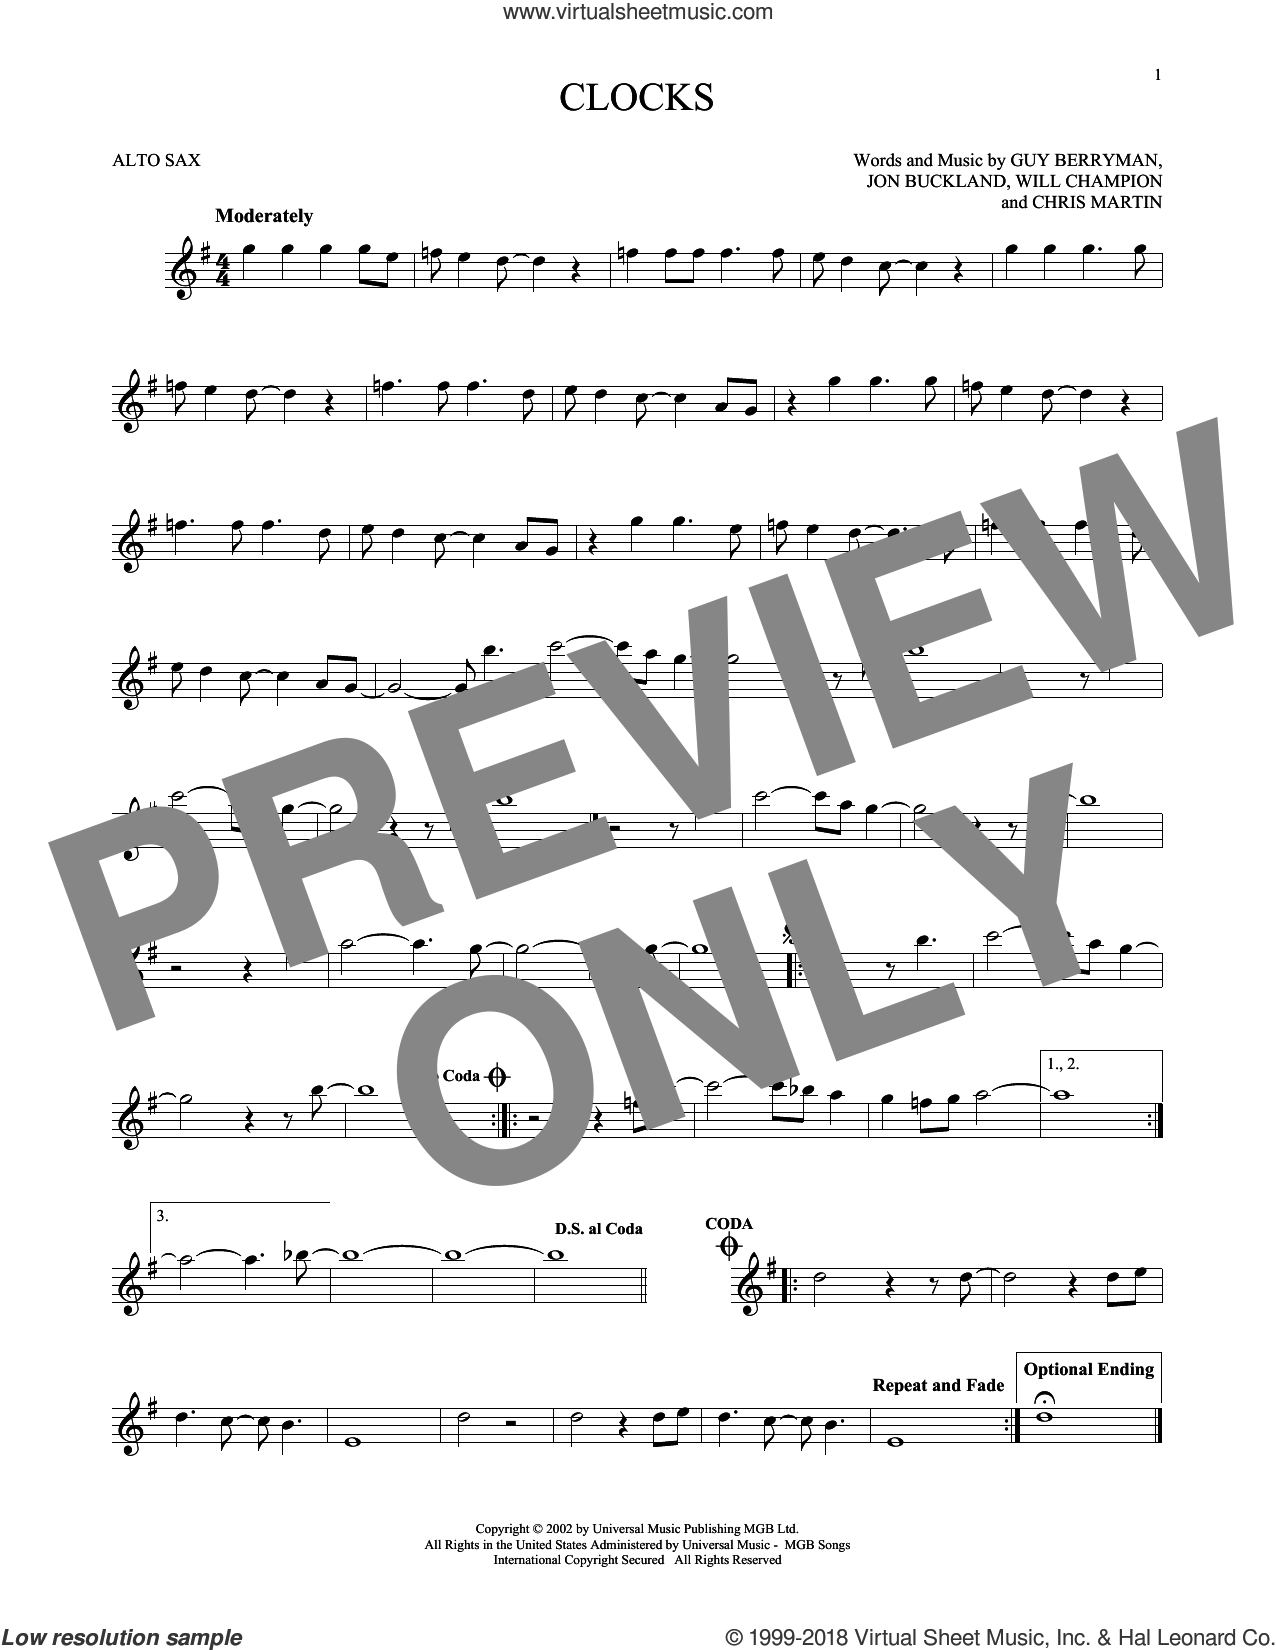 Clocks sheet music for alto saxophone solo by Coldplay, Chris Martin, Guy Berryman, Jon Buckland and Will Champion, intermediate skill level